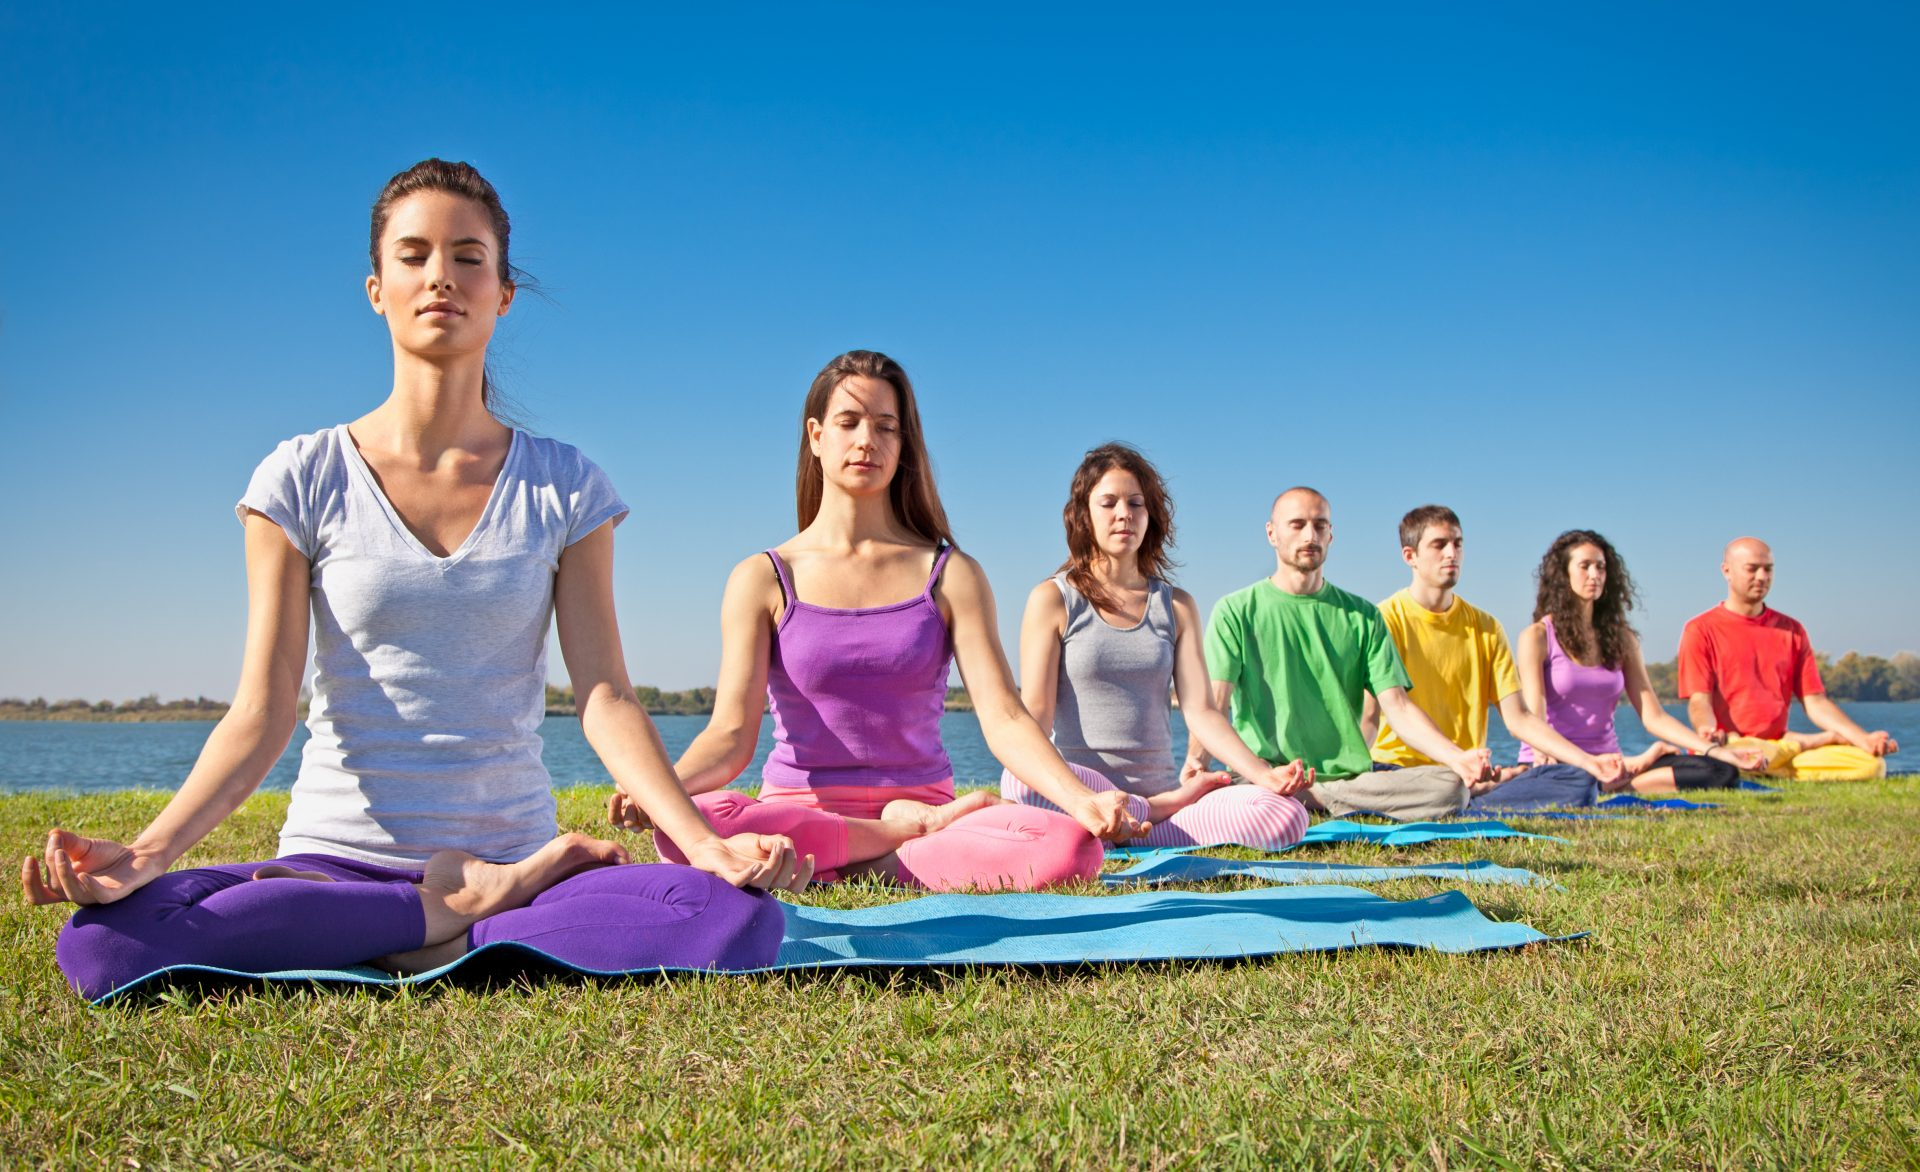 Science Has Proven That Group Meditation Literally Changes The World